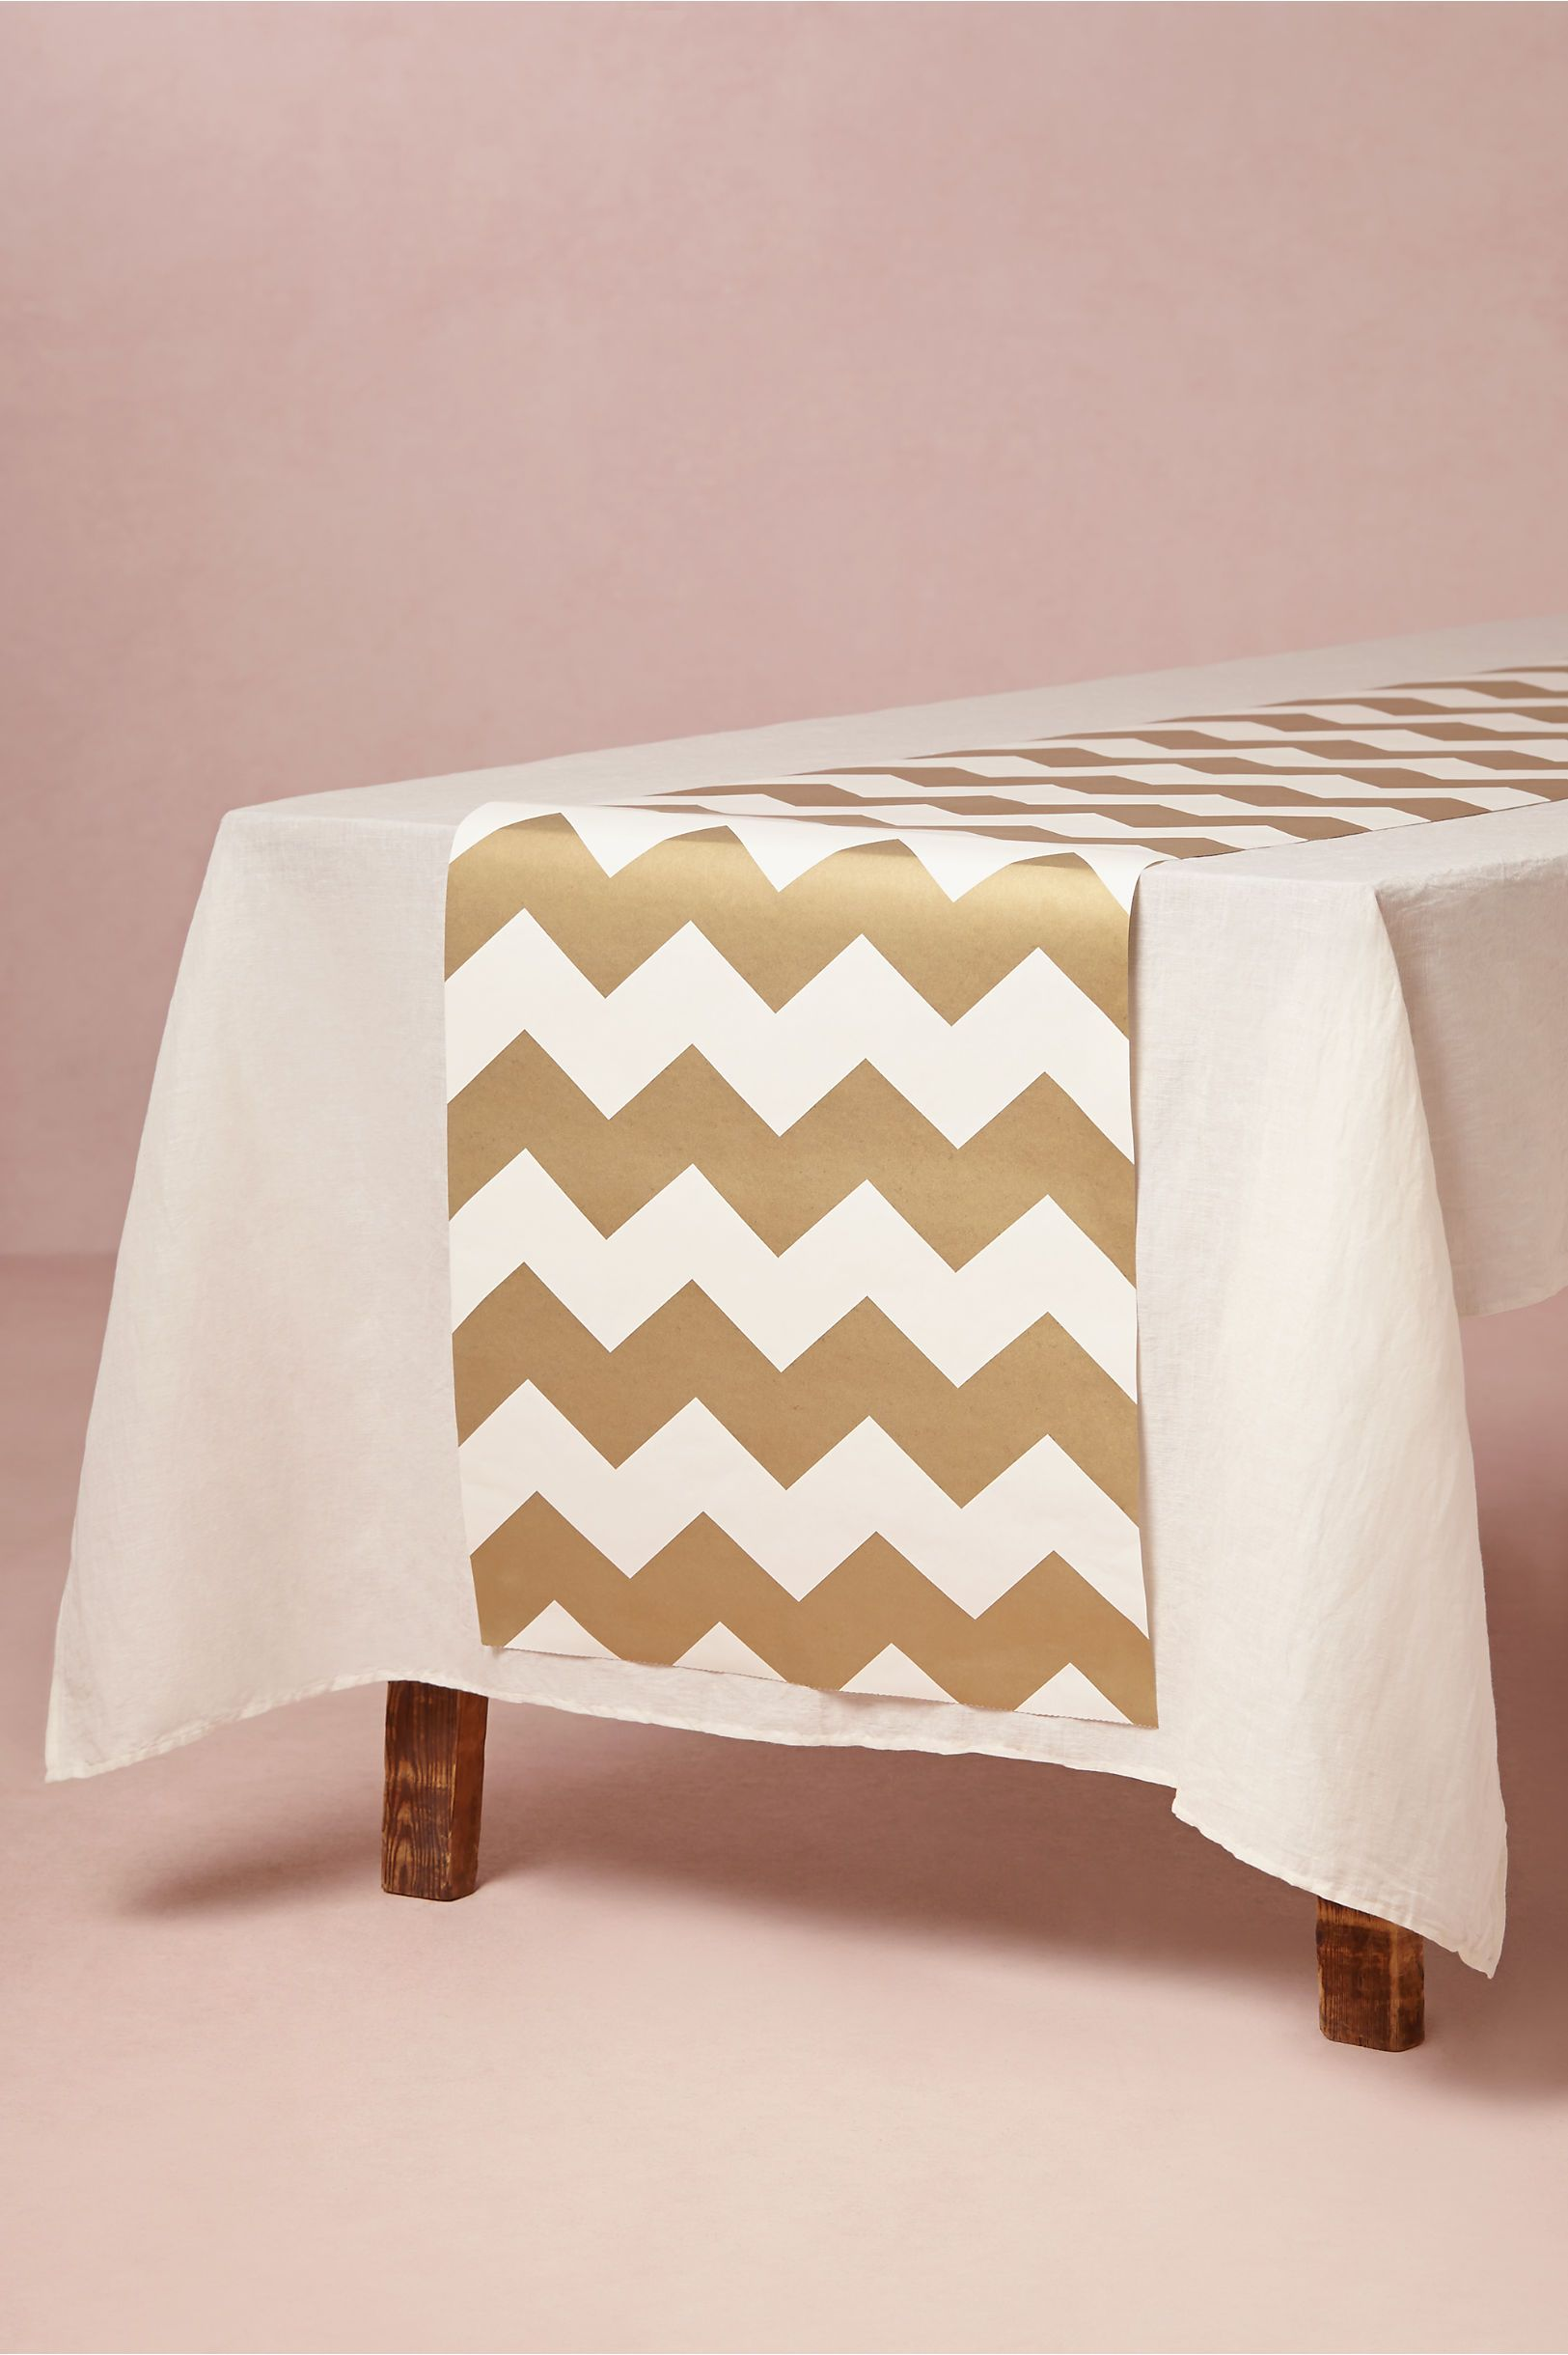 Chevron Table Runners   Like The Ones We Featured In Todayu0027s Real Wedding:  Http: